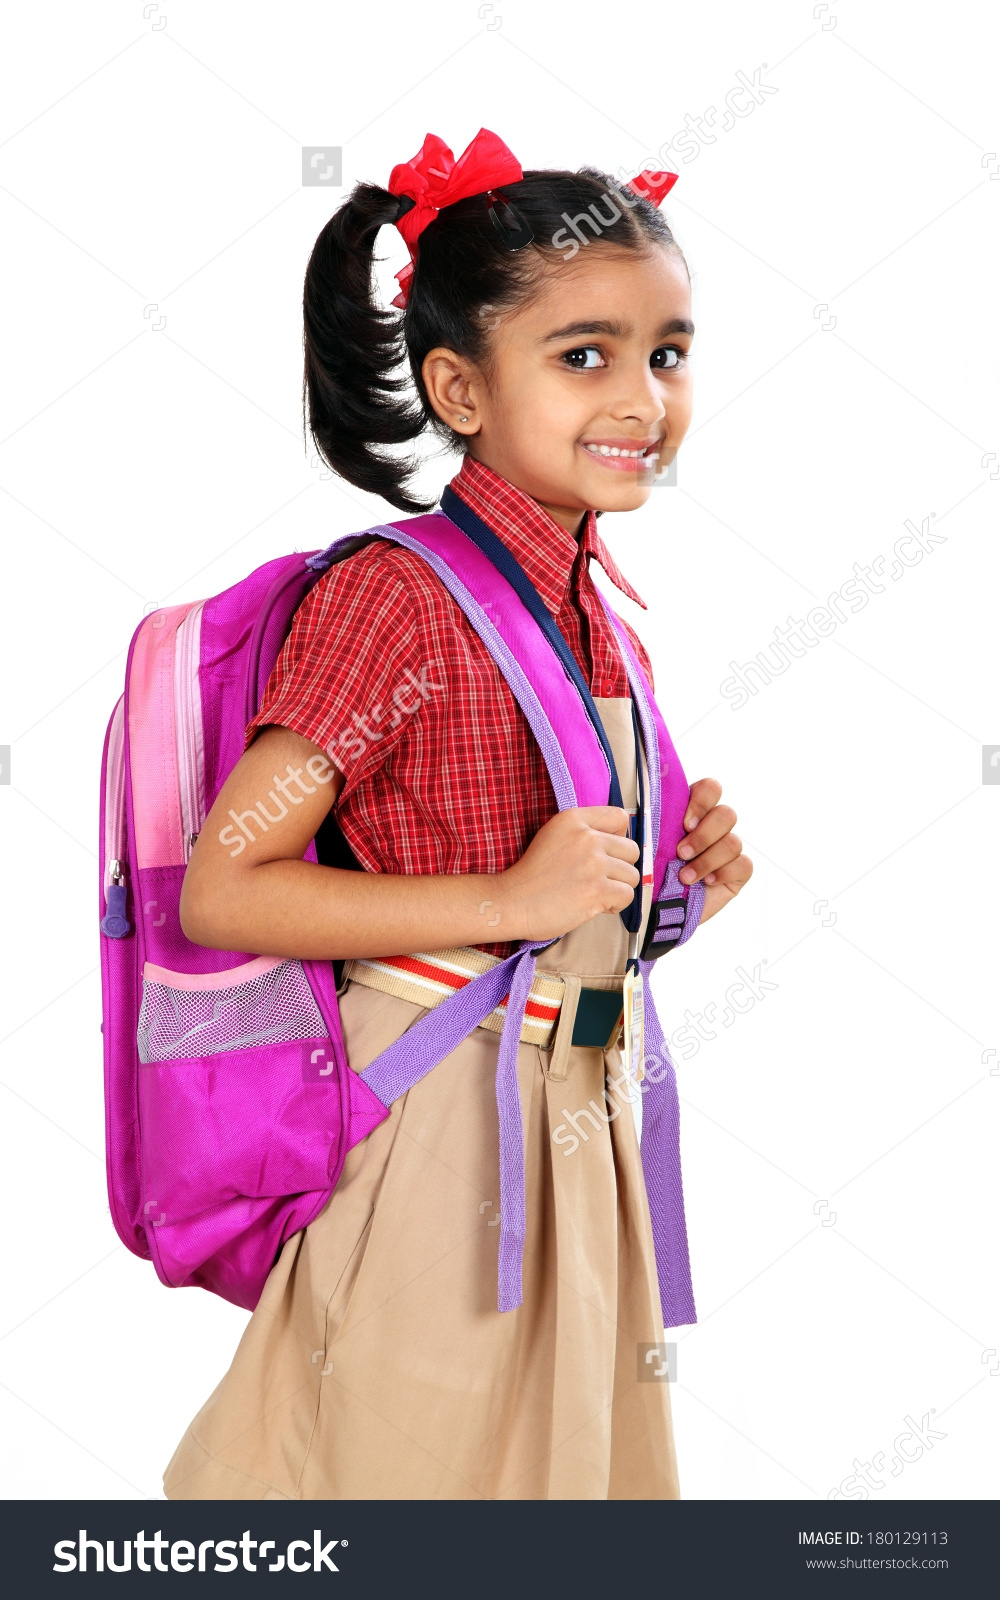 Bag clipart primary school With In Primary Bag Indian